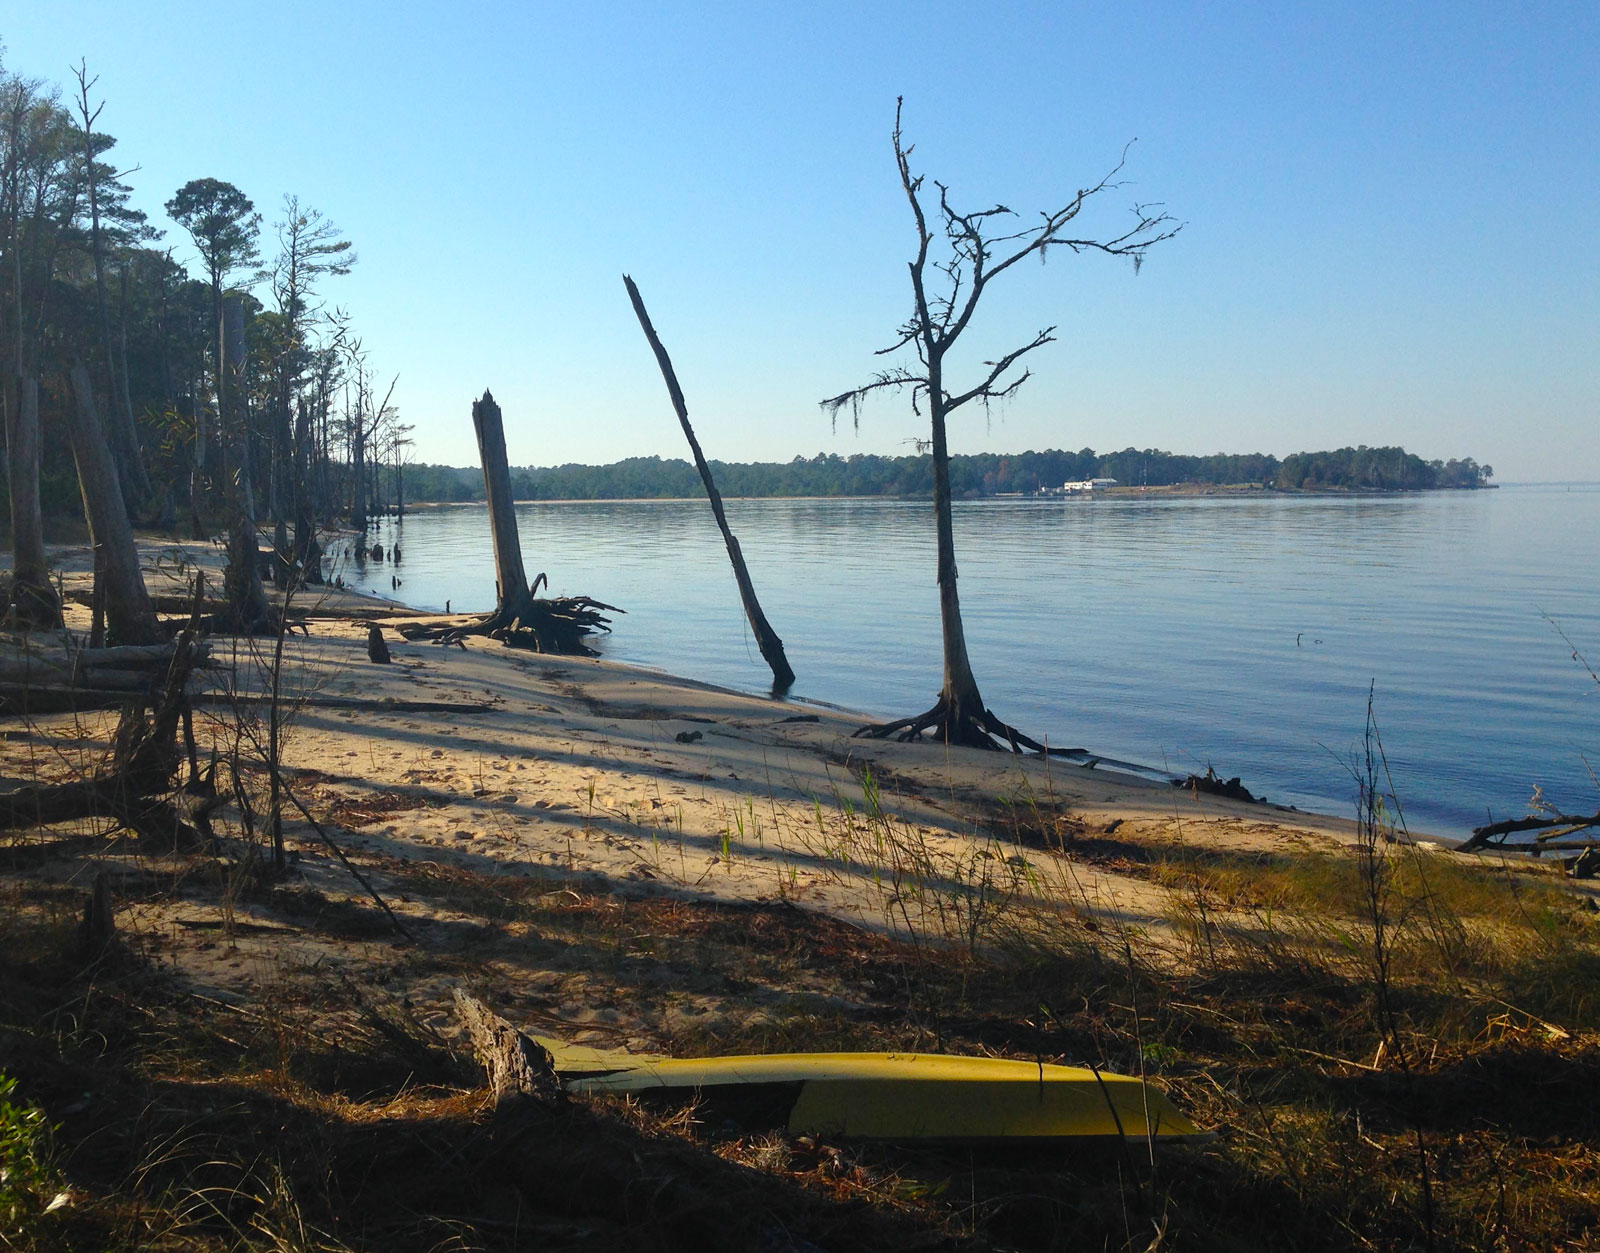 Neuse River from Croatan National Forest